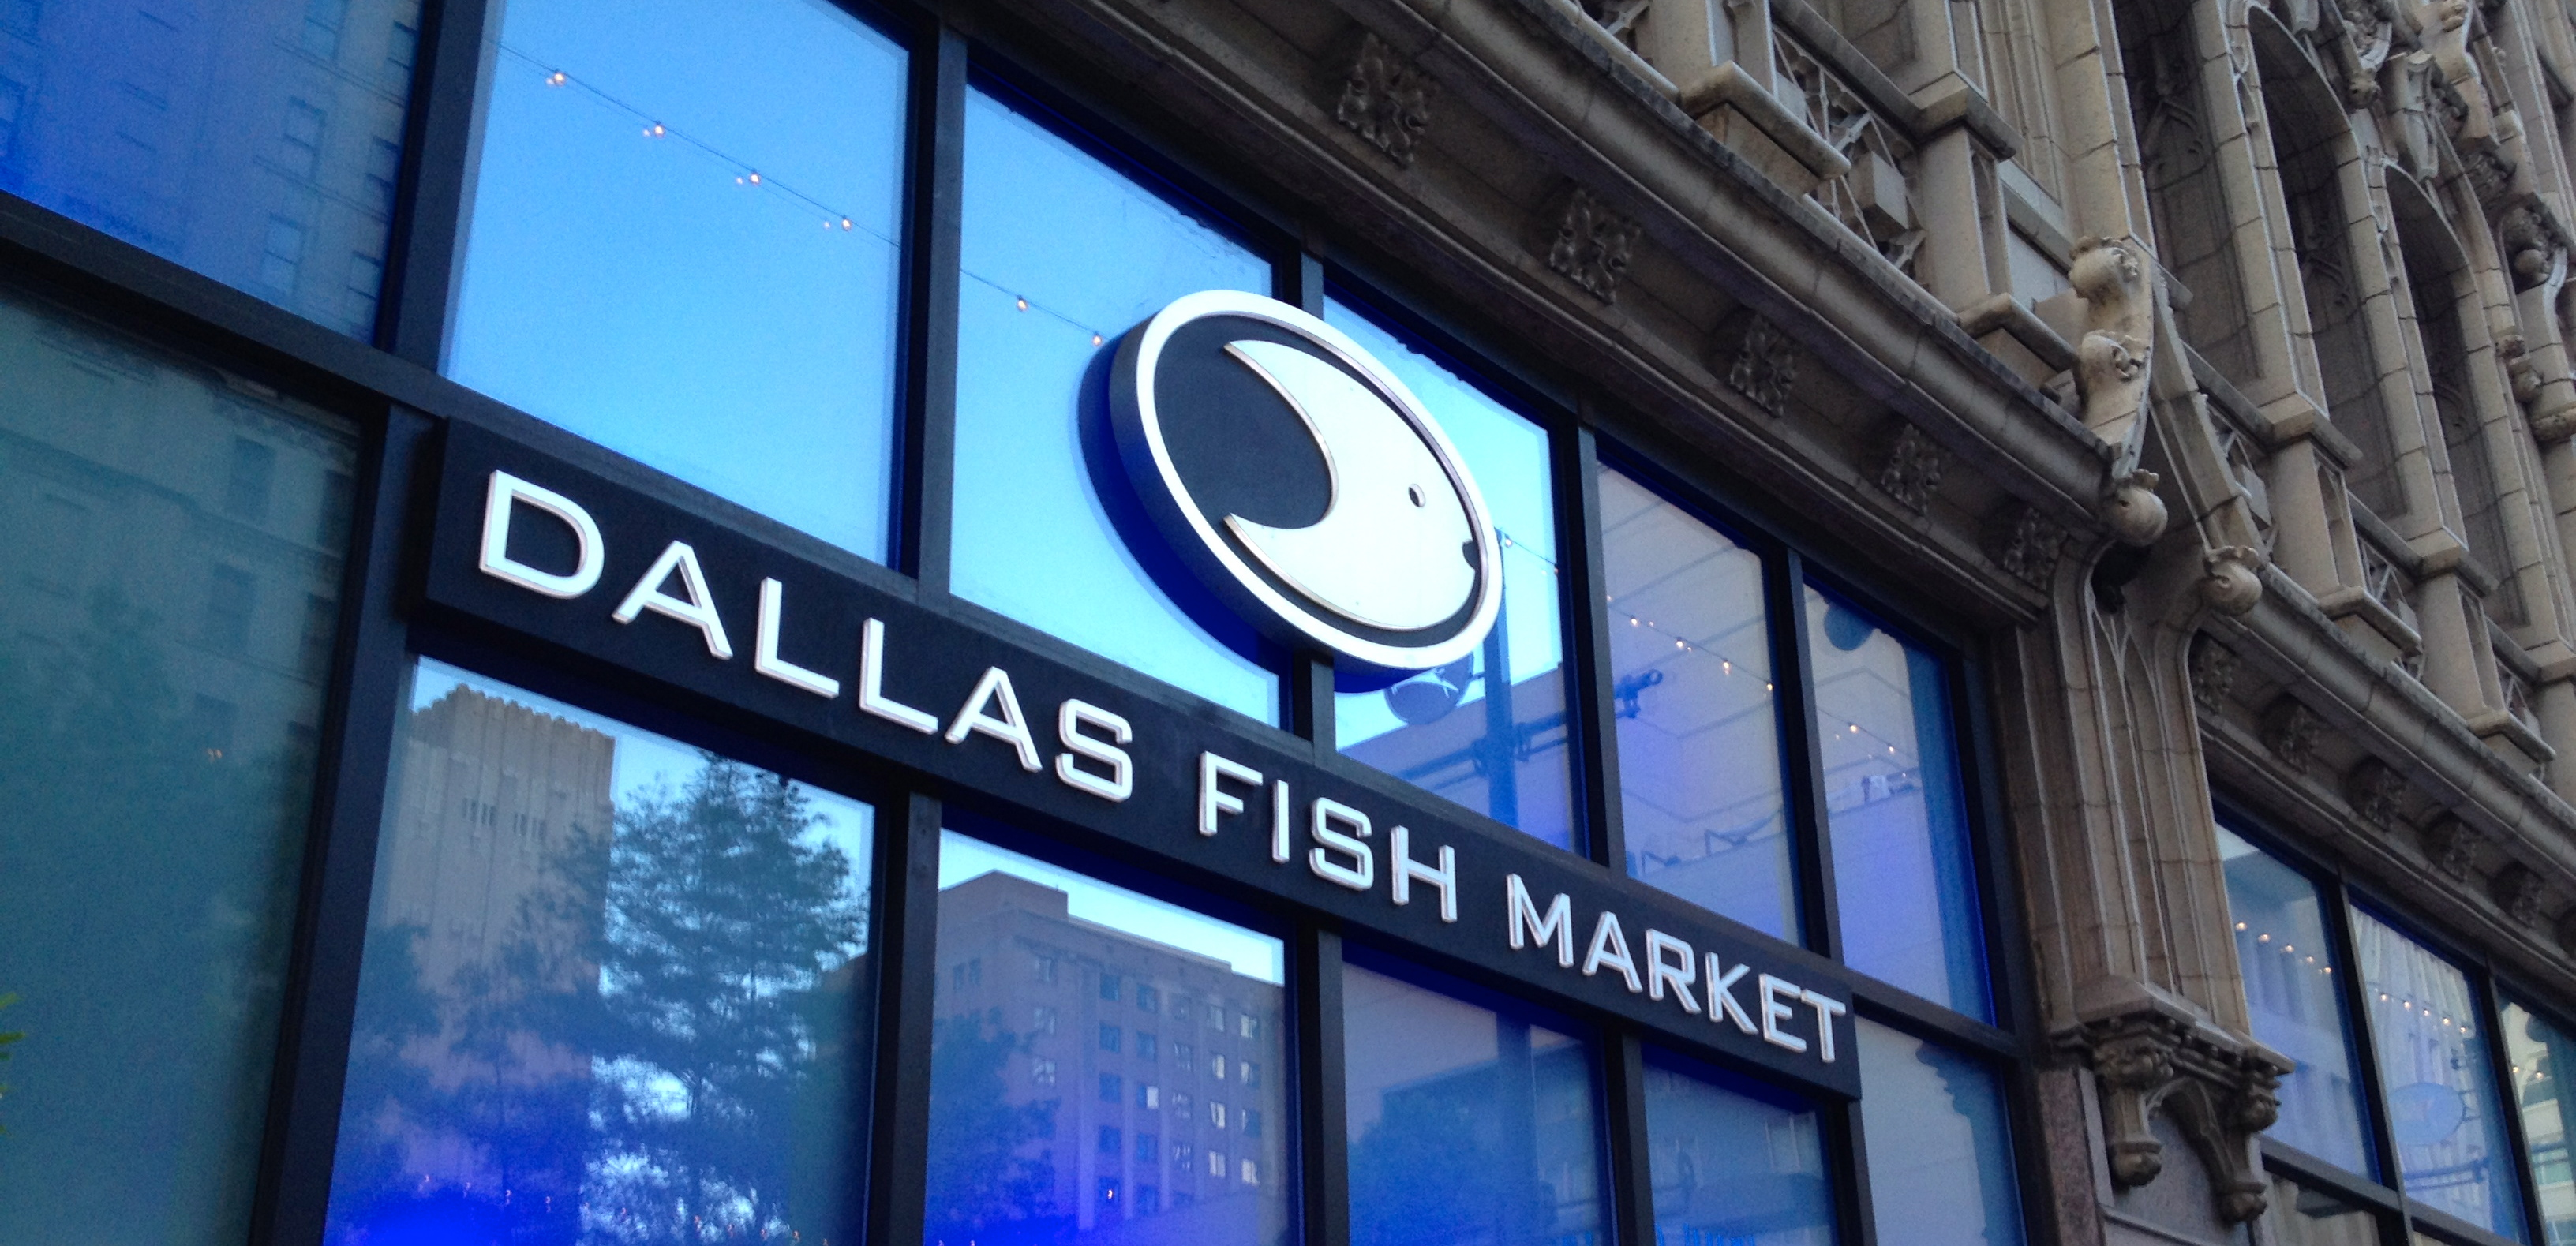 Dallas indulge exploring the food drink and arts around for Dallas fish market